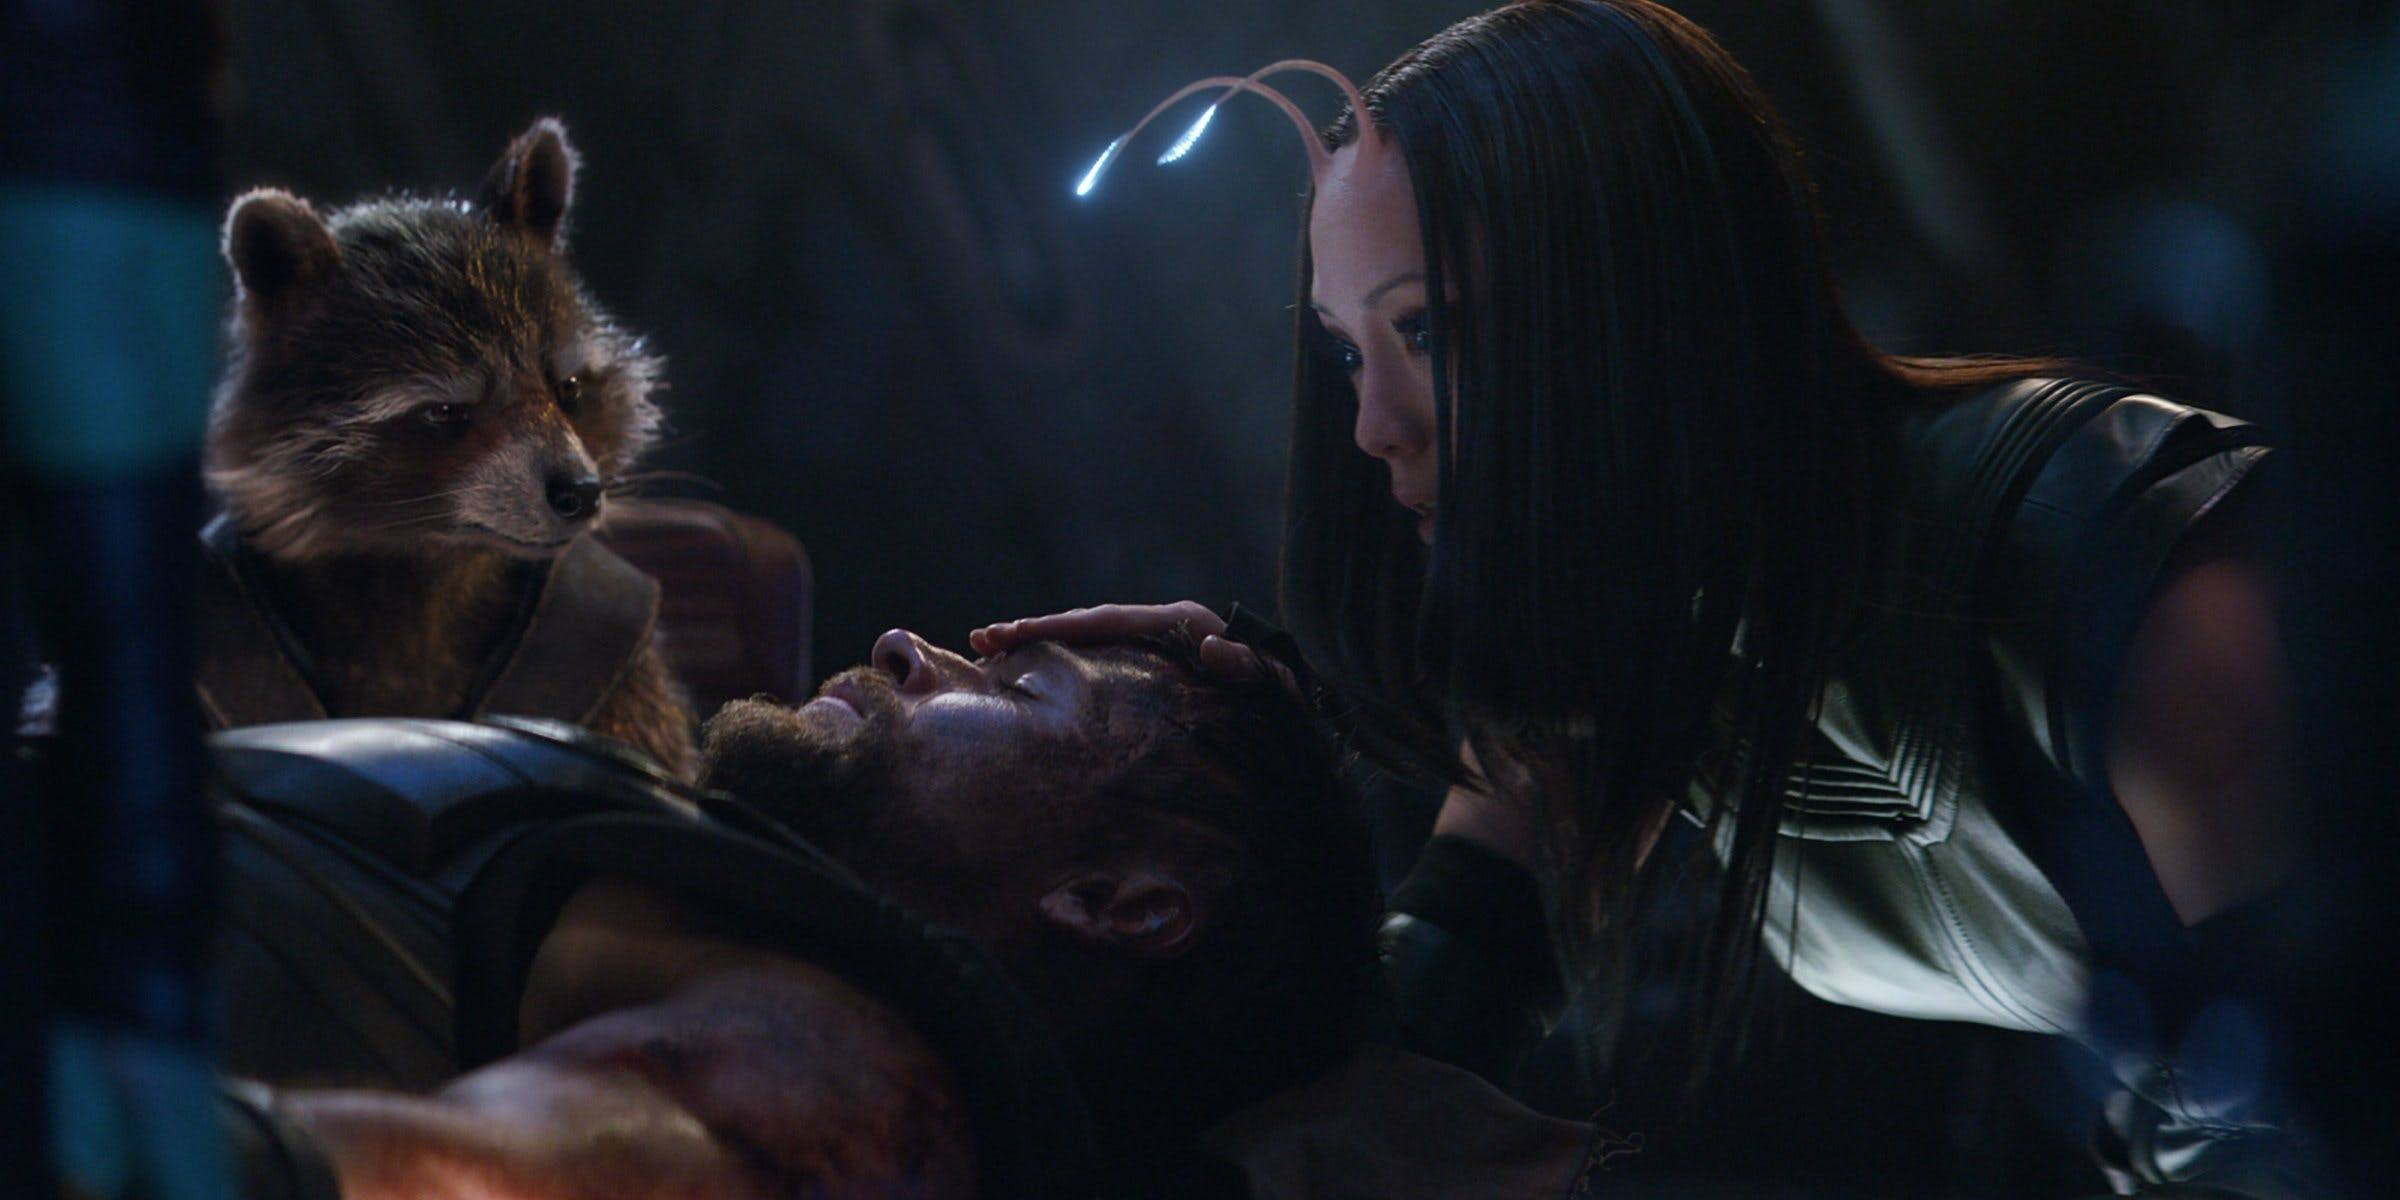 Resultado de imagem para guardians of the galaxy thor sleeping